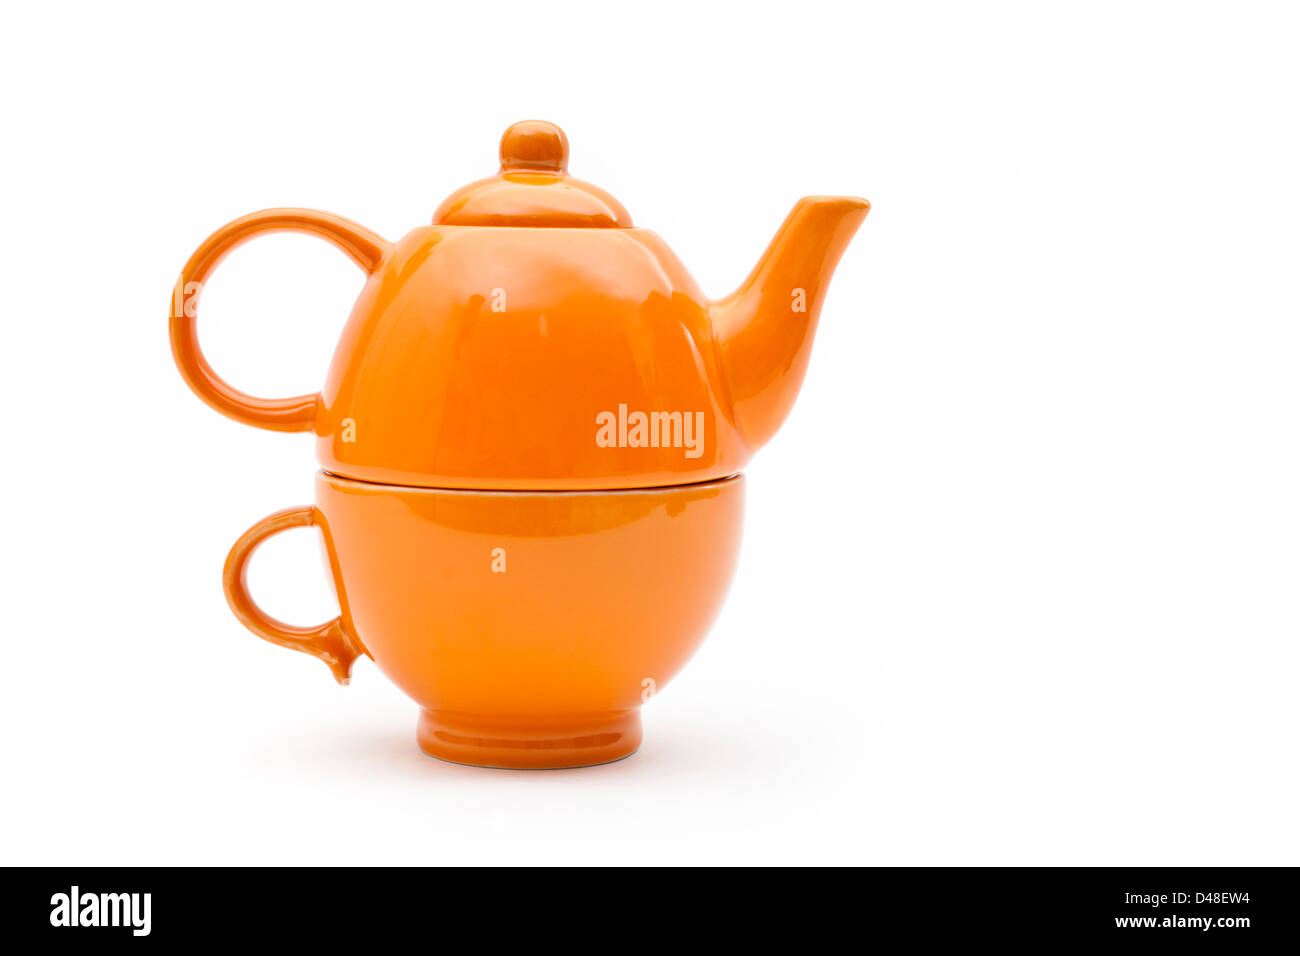 Orange teapot and teacup set isolated on a white background. Tea pot designed to sit on top of the cup. - Stock Image